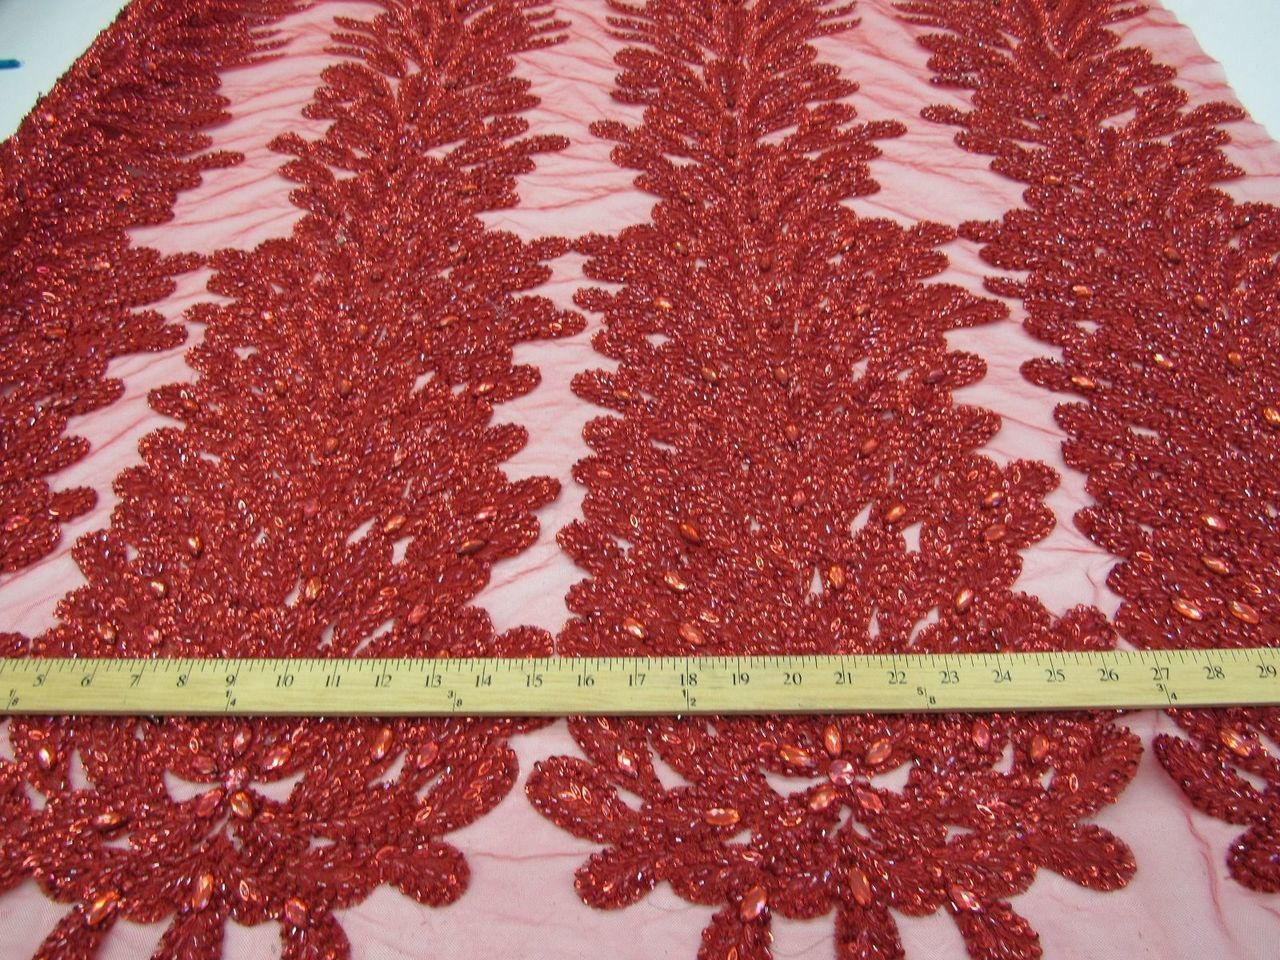 Supreme bridal wedding peacock beaded feather mesh lace red. Sold by 2 feather. - KINGDOM OF FABRICS